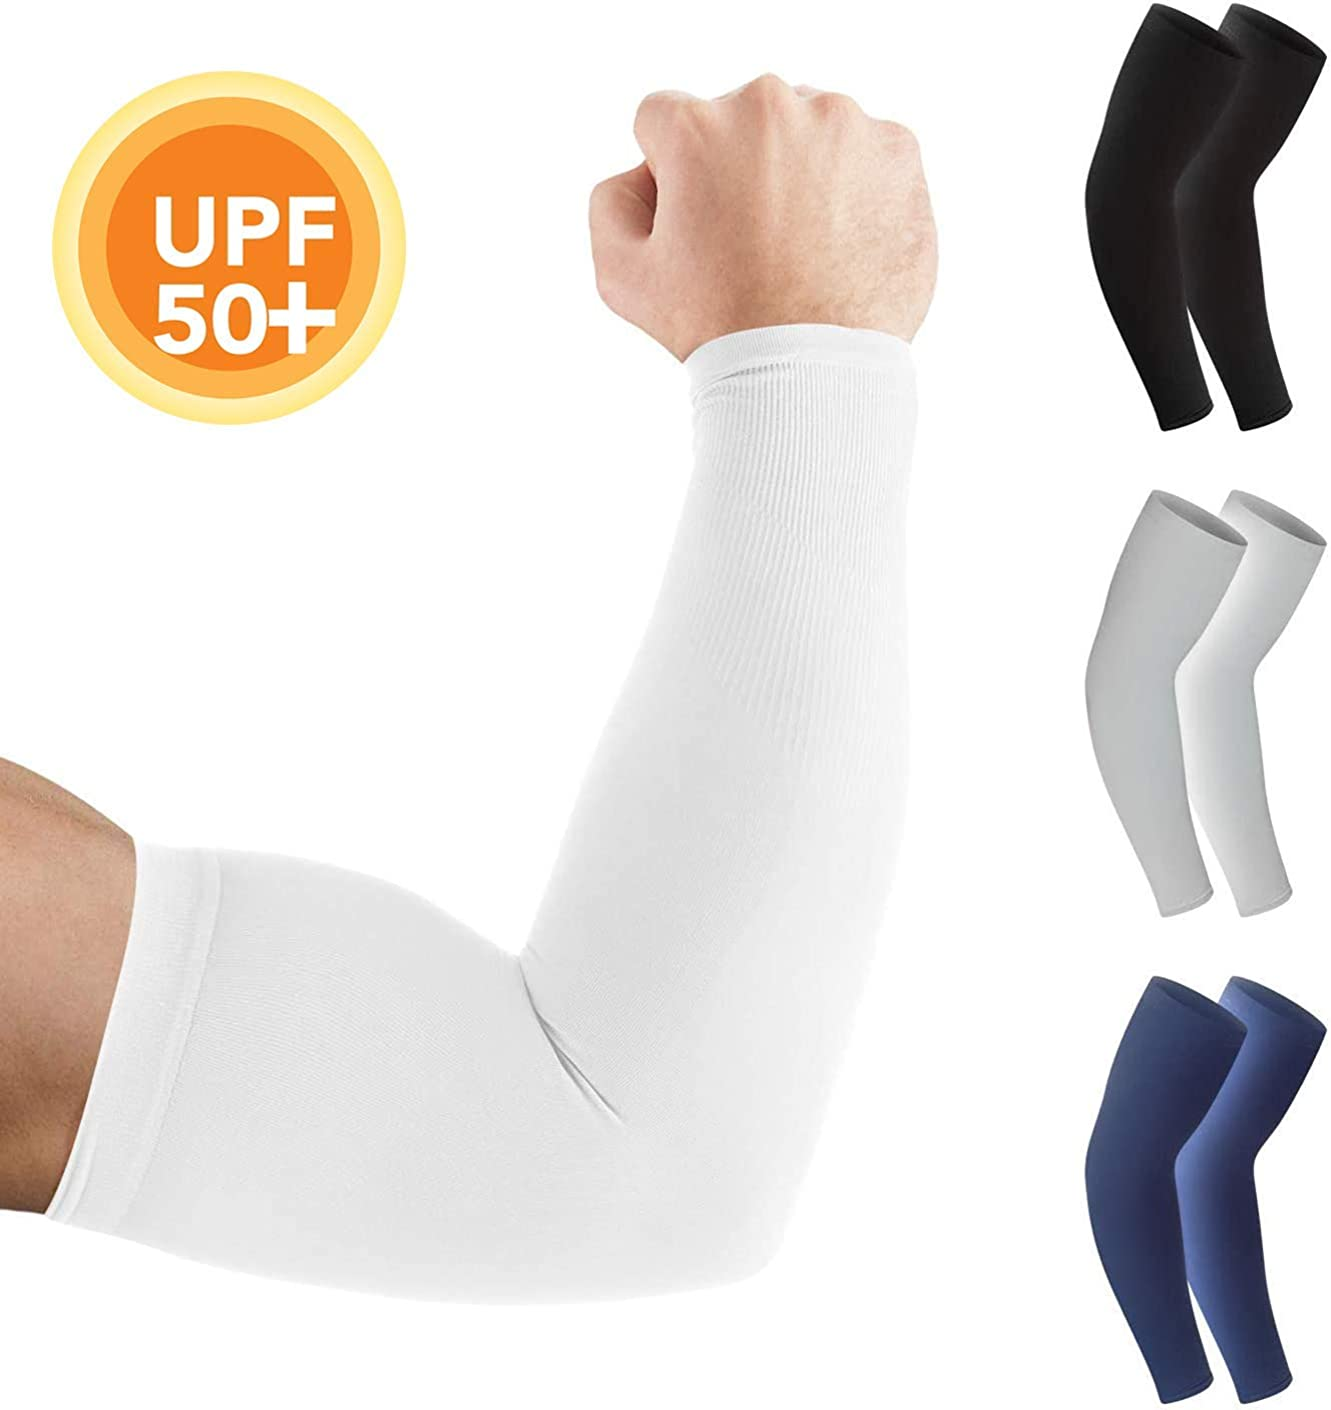 Arm Sleeves for Men and Women – Tattoo Cover Up, Sun Protection - Cooling UPF 50 Compression - Basketball, Running